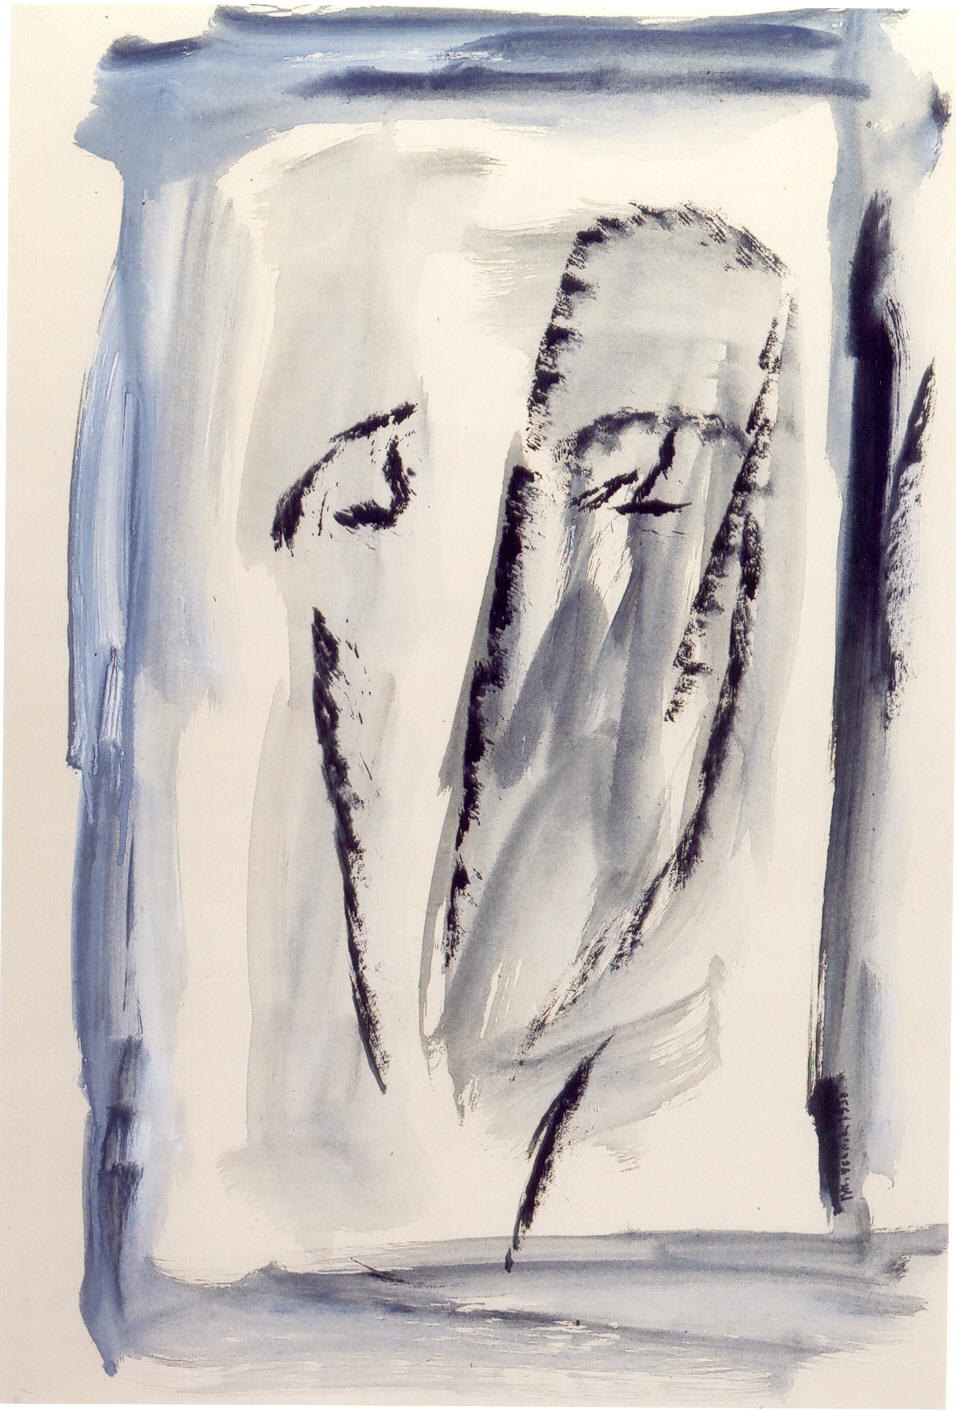 Autoritratto, 1950, tempera su carta, cm 76 x 53  Autoritratto, 1950, tempera on paper, cm 76 x 53